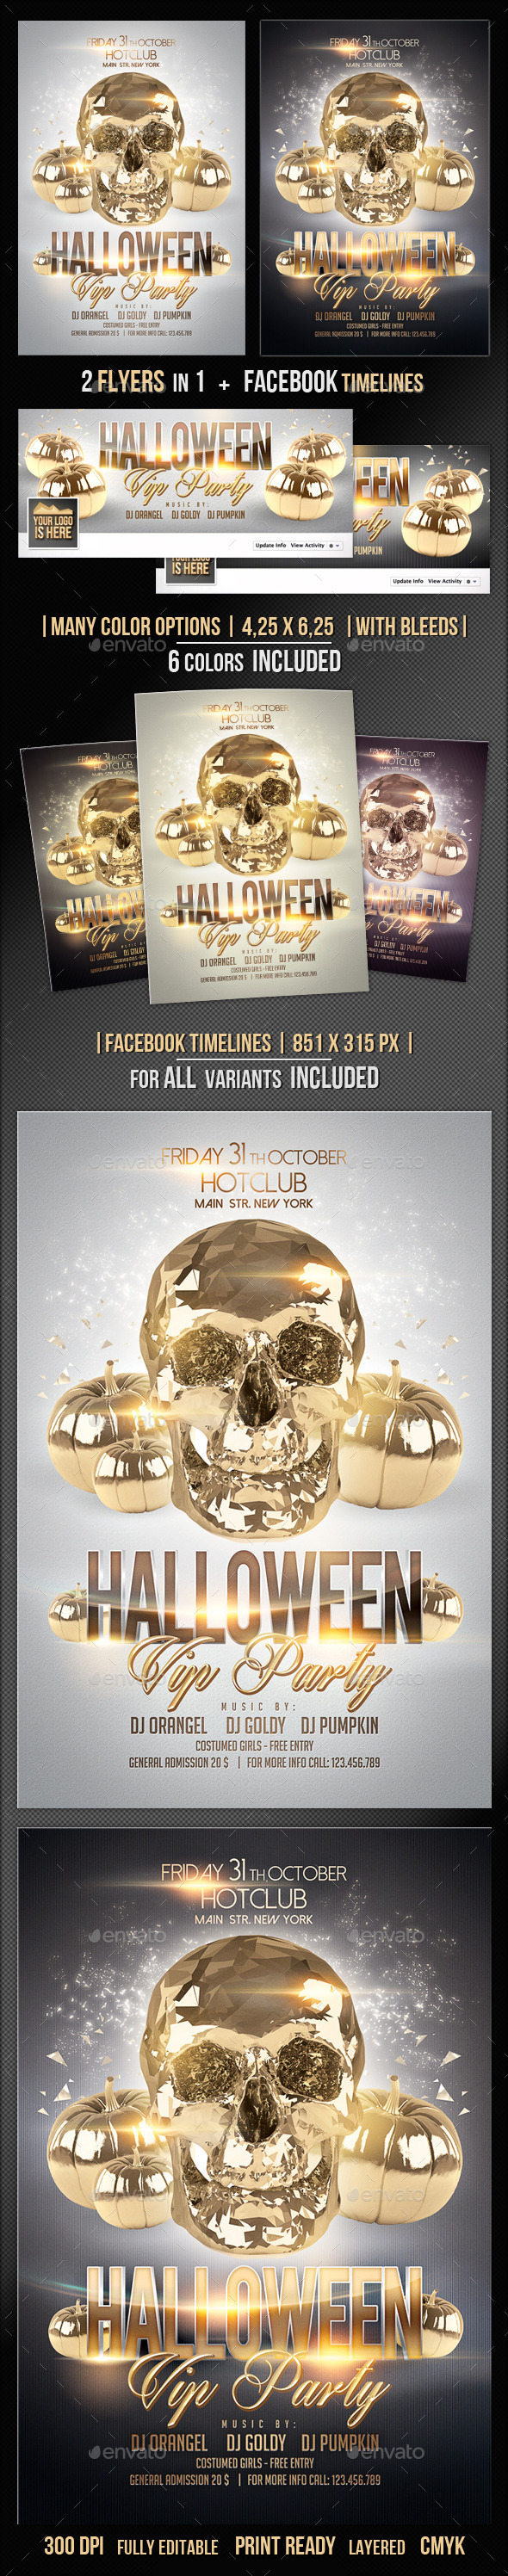 GraphicRiver Halloween Flyer & Fb Timeline Vip Party 9114413